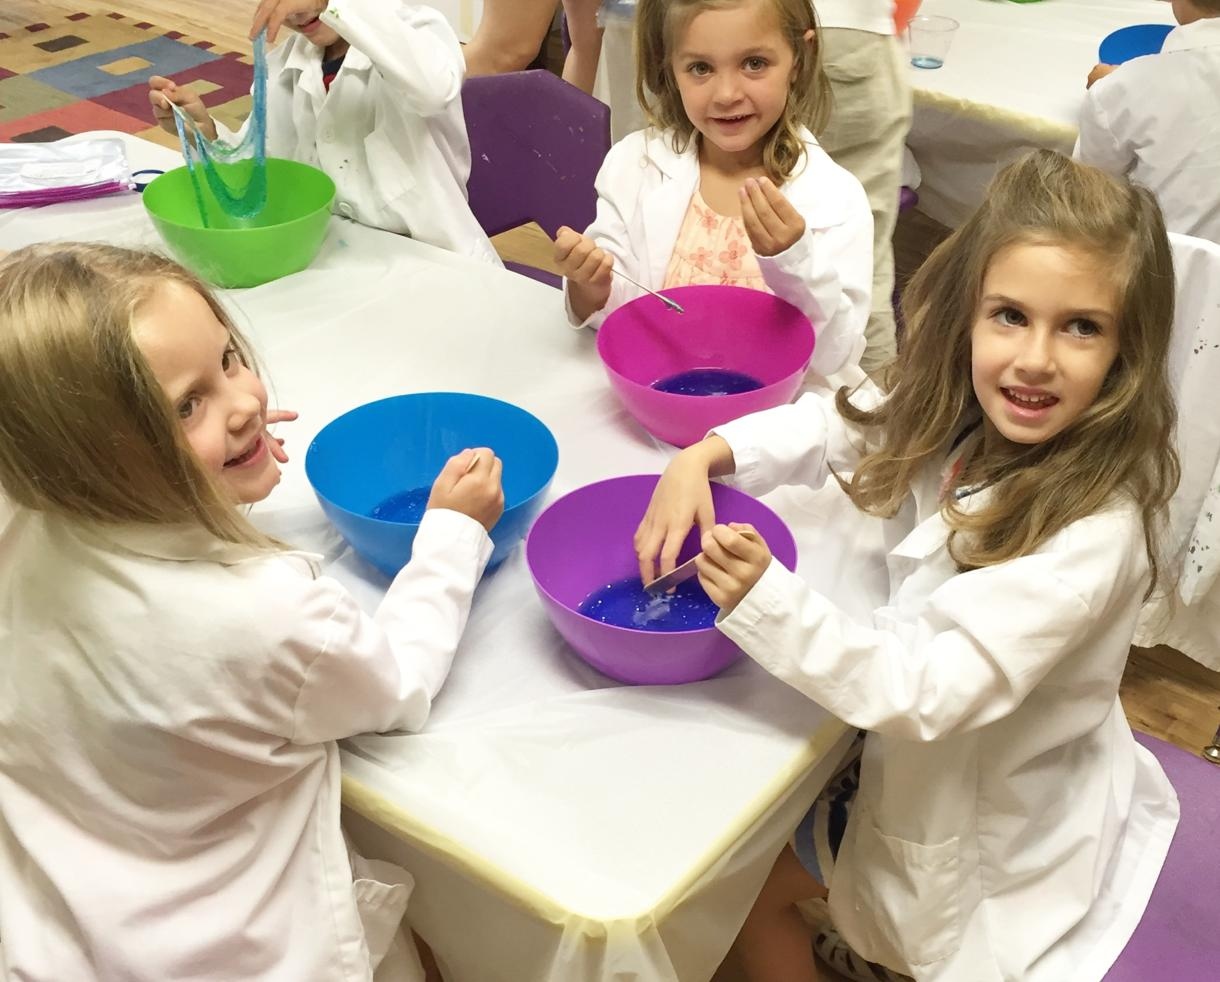 $199+ for STEAM Birthday Party at Sprouting Scientists in Roswell for Ages 3-10 - Multiple Themes Available! (Up to $76 Off)